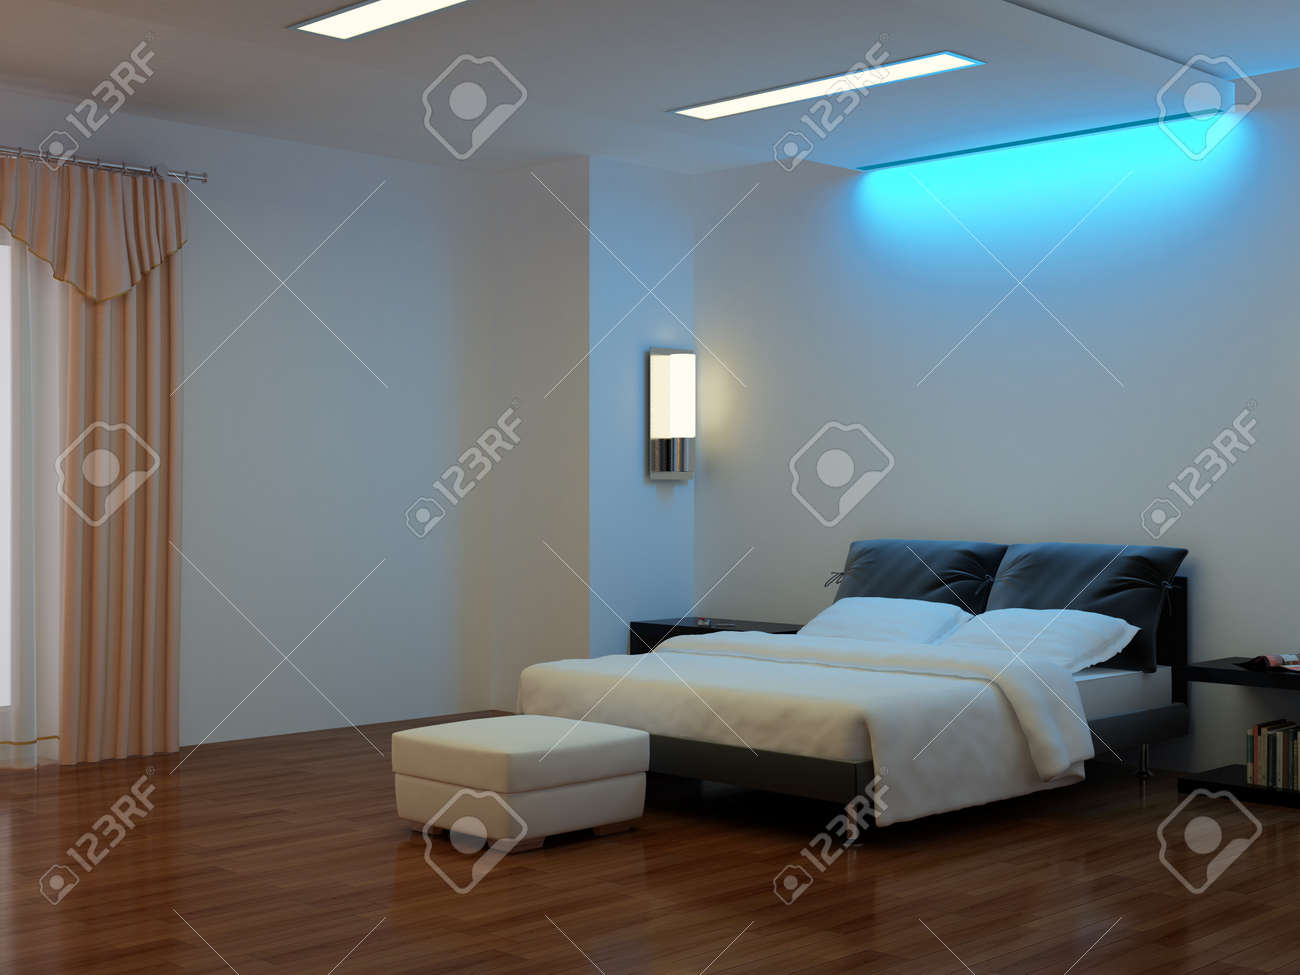 High Resolution Image Interior A Bed In Bedroom Stock Photo